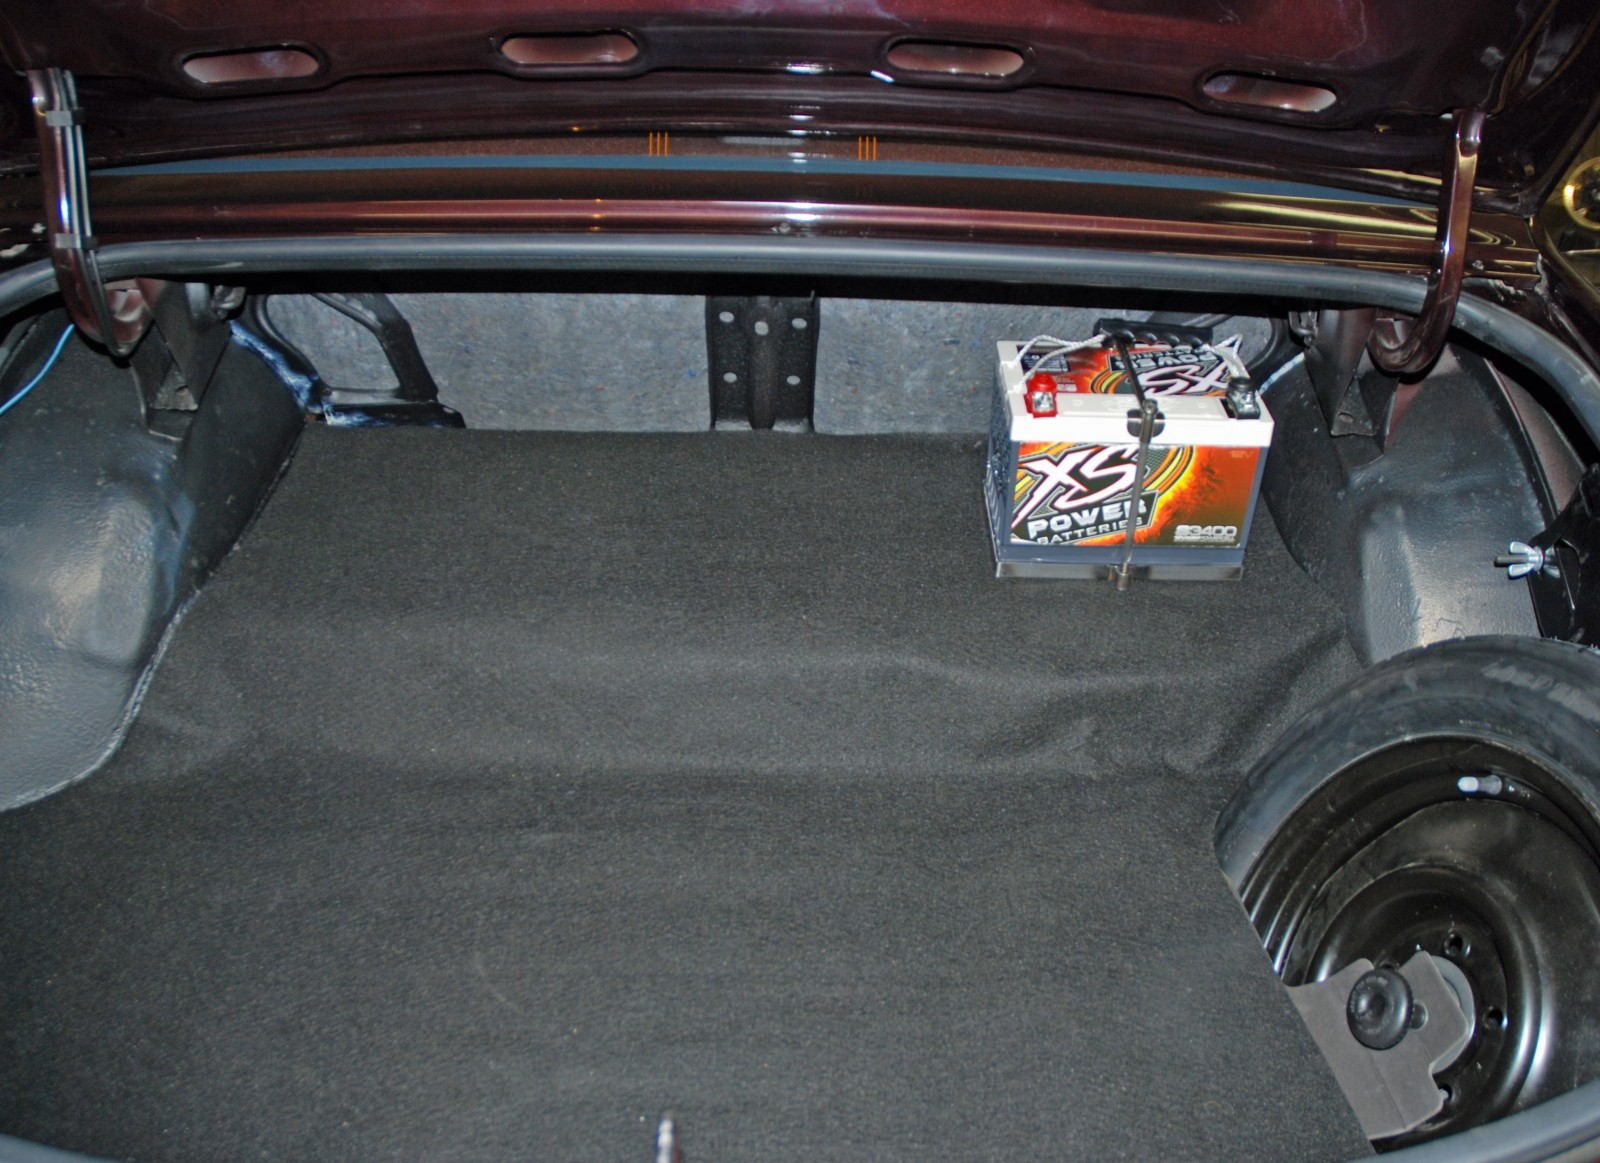 Where is the battery in a car - Battery Mounting Tips How To Mount Your Battery For Optimal Safety And Track Performance